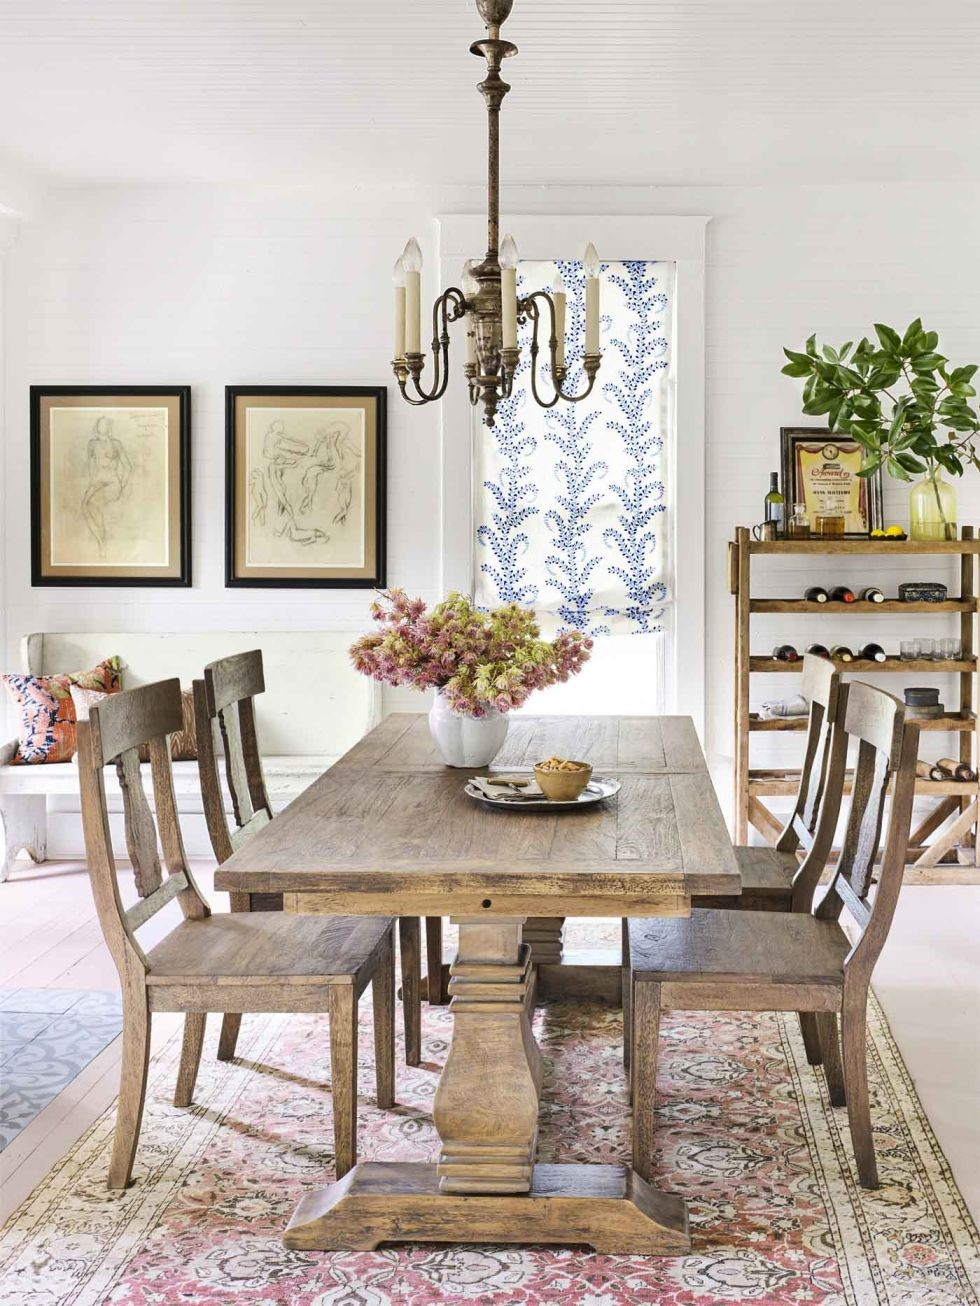 Elegant Farmhouse Dining Room Decor | ArchitectureIn